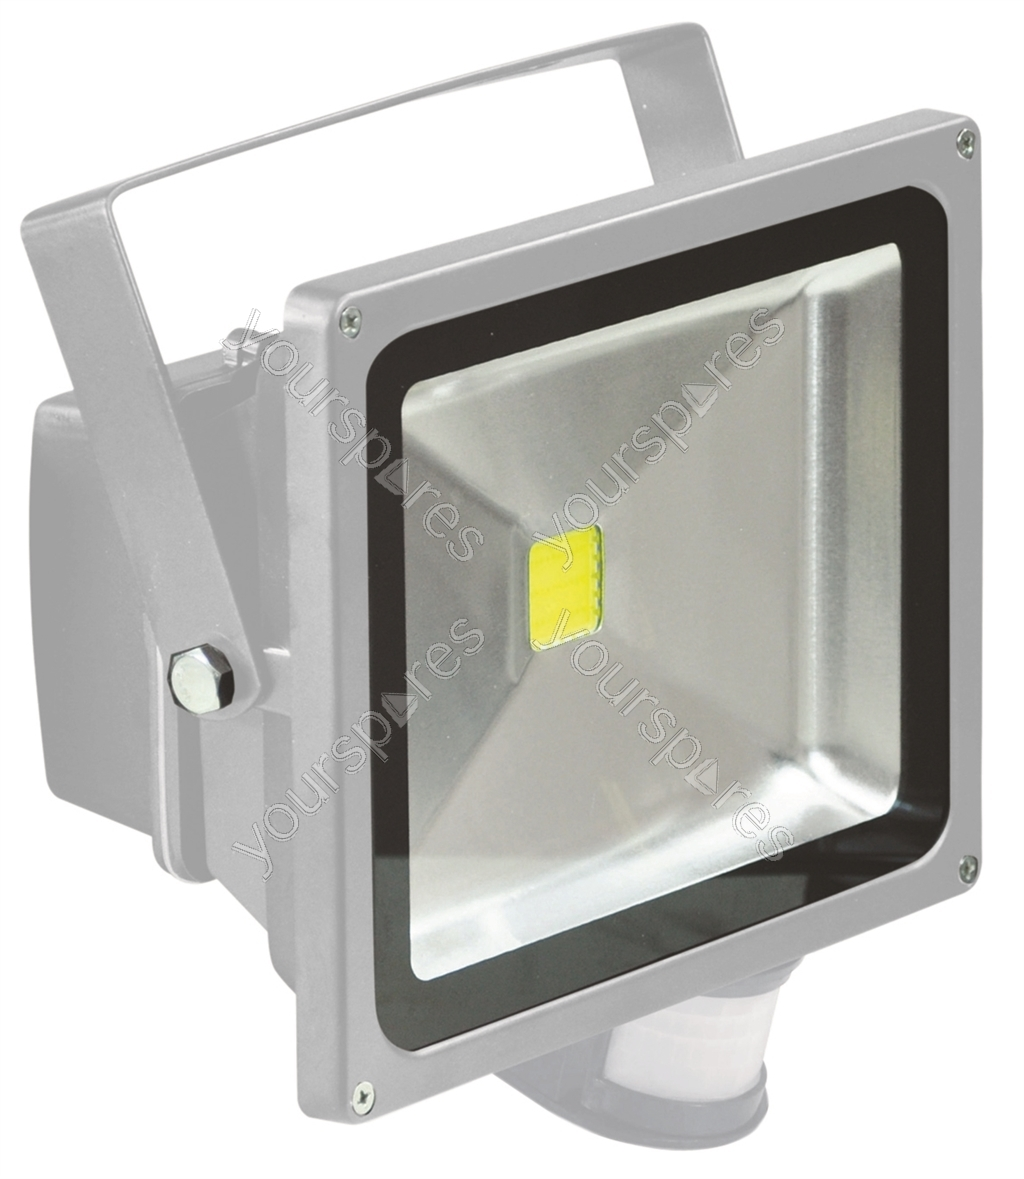 Outdoor Light Pir Override: Grey 30 W LED Flood Light With PIR Sensor L320CPG By Eagle